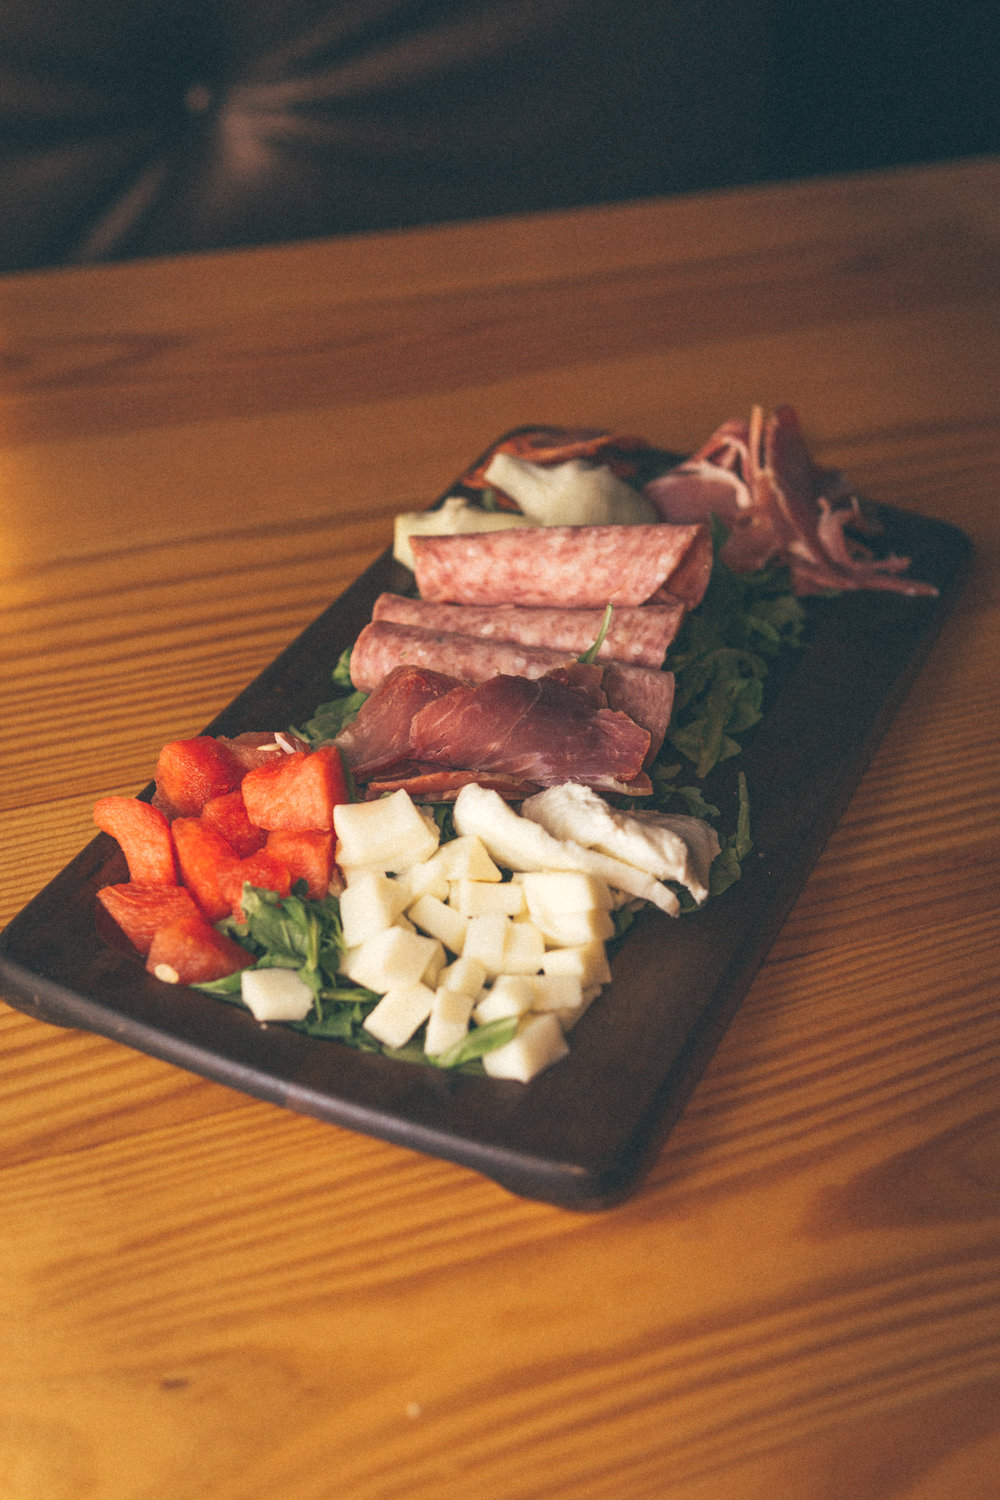 Meat + Cheese Board: Provolone and fresh mozzarella, salami, capicola and pepperoni, and artichokes and watermelon chunks atop a bed of arugula. Offering varies daily.